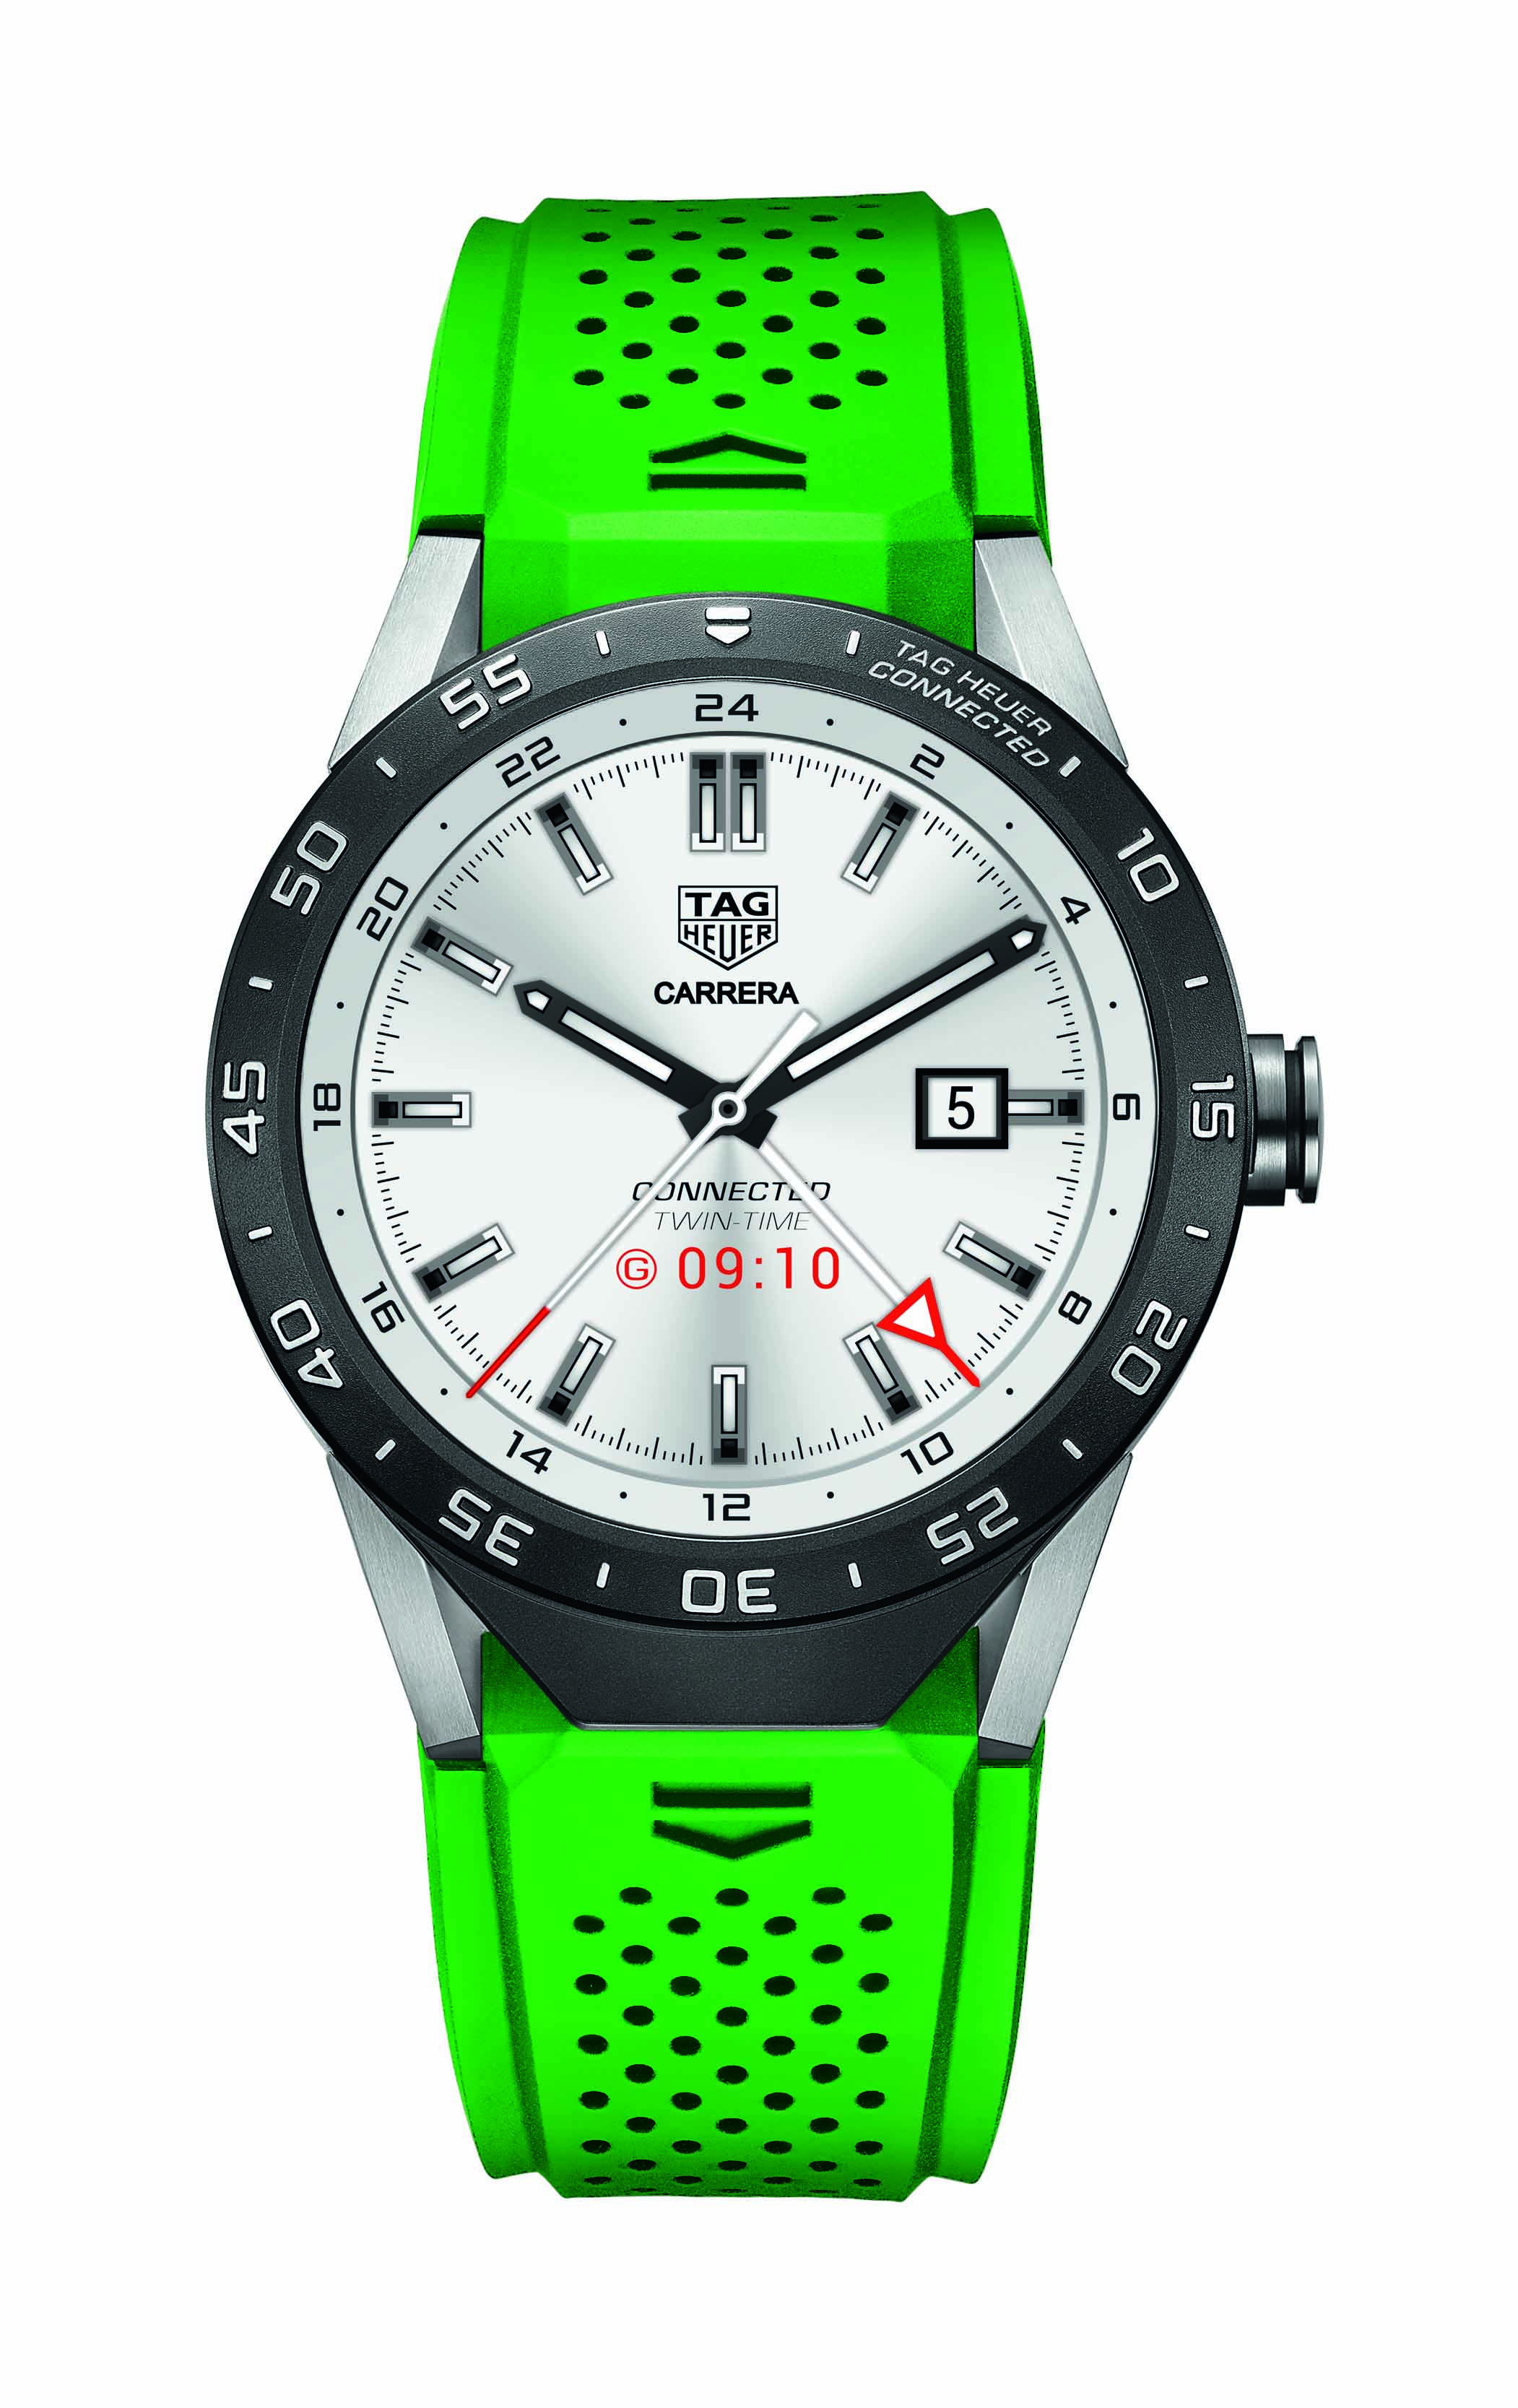 SAR8A80.FT6059 - GREEN - DIAL ON 2015